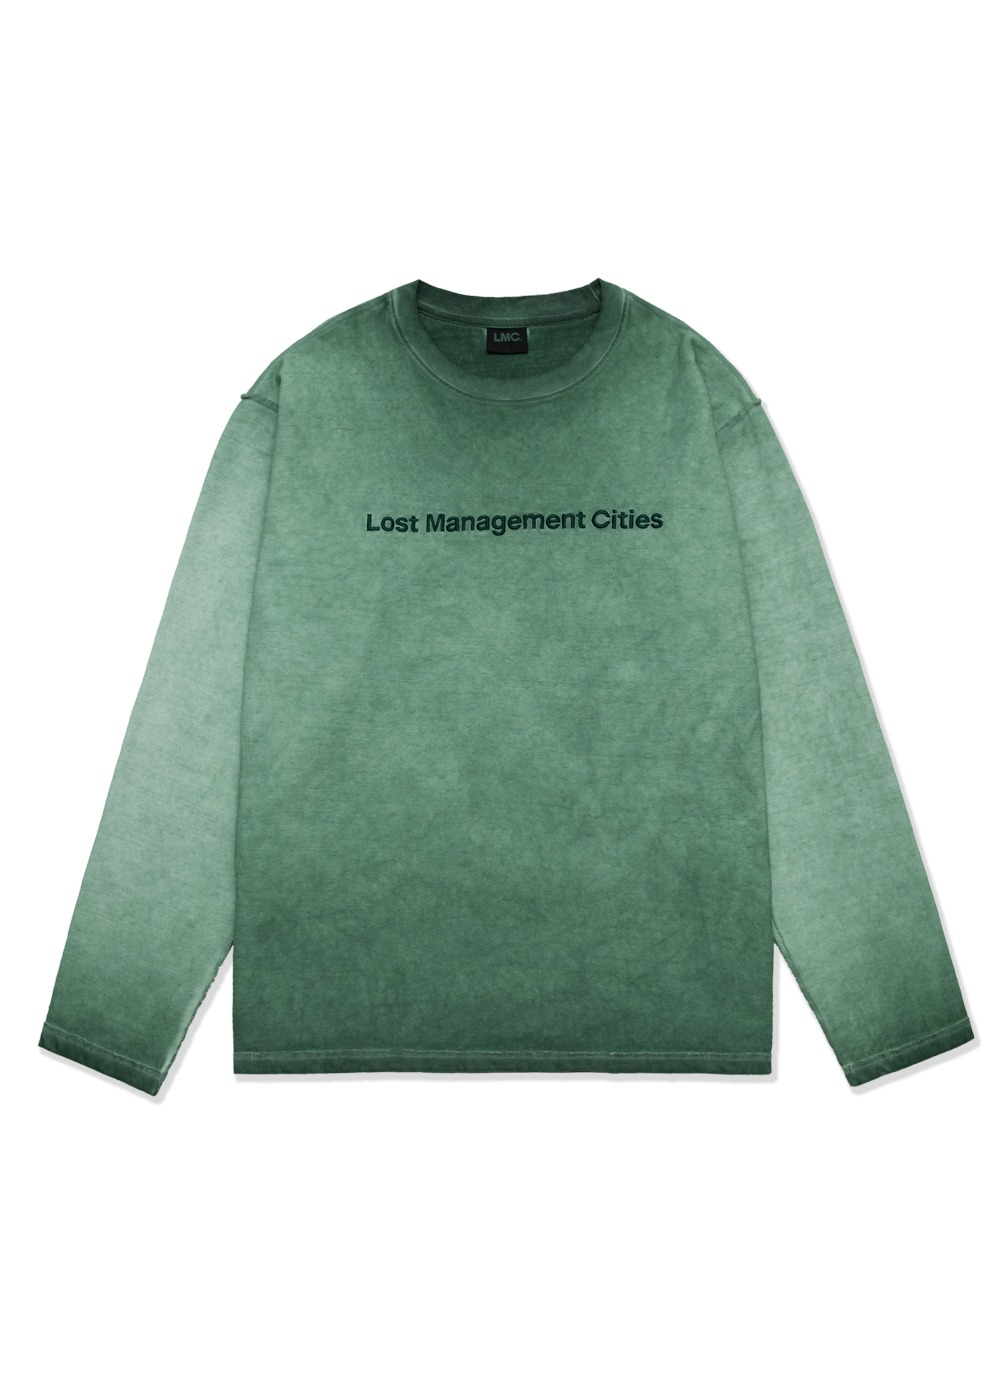 LMC OVERDYED TED FN LONG SLV TEE green